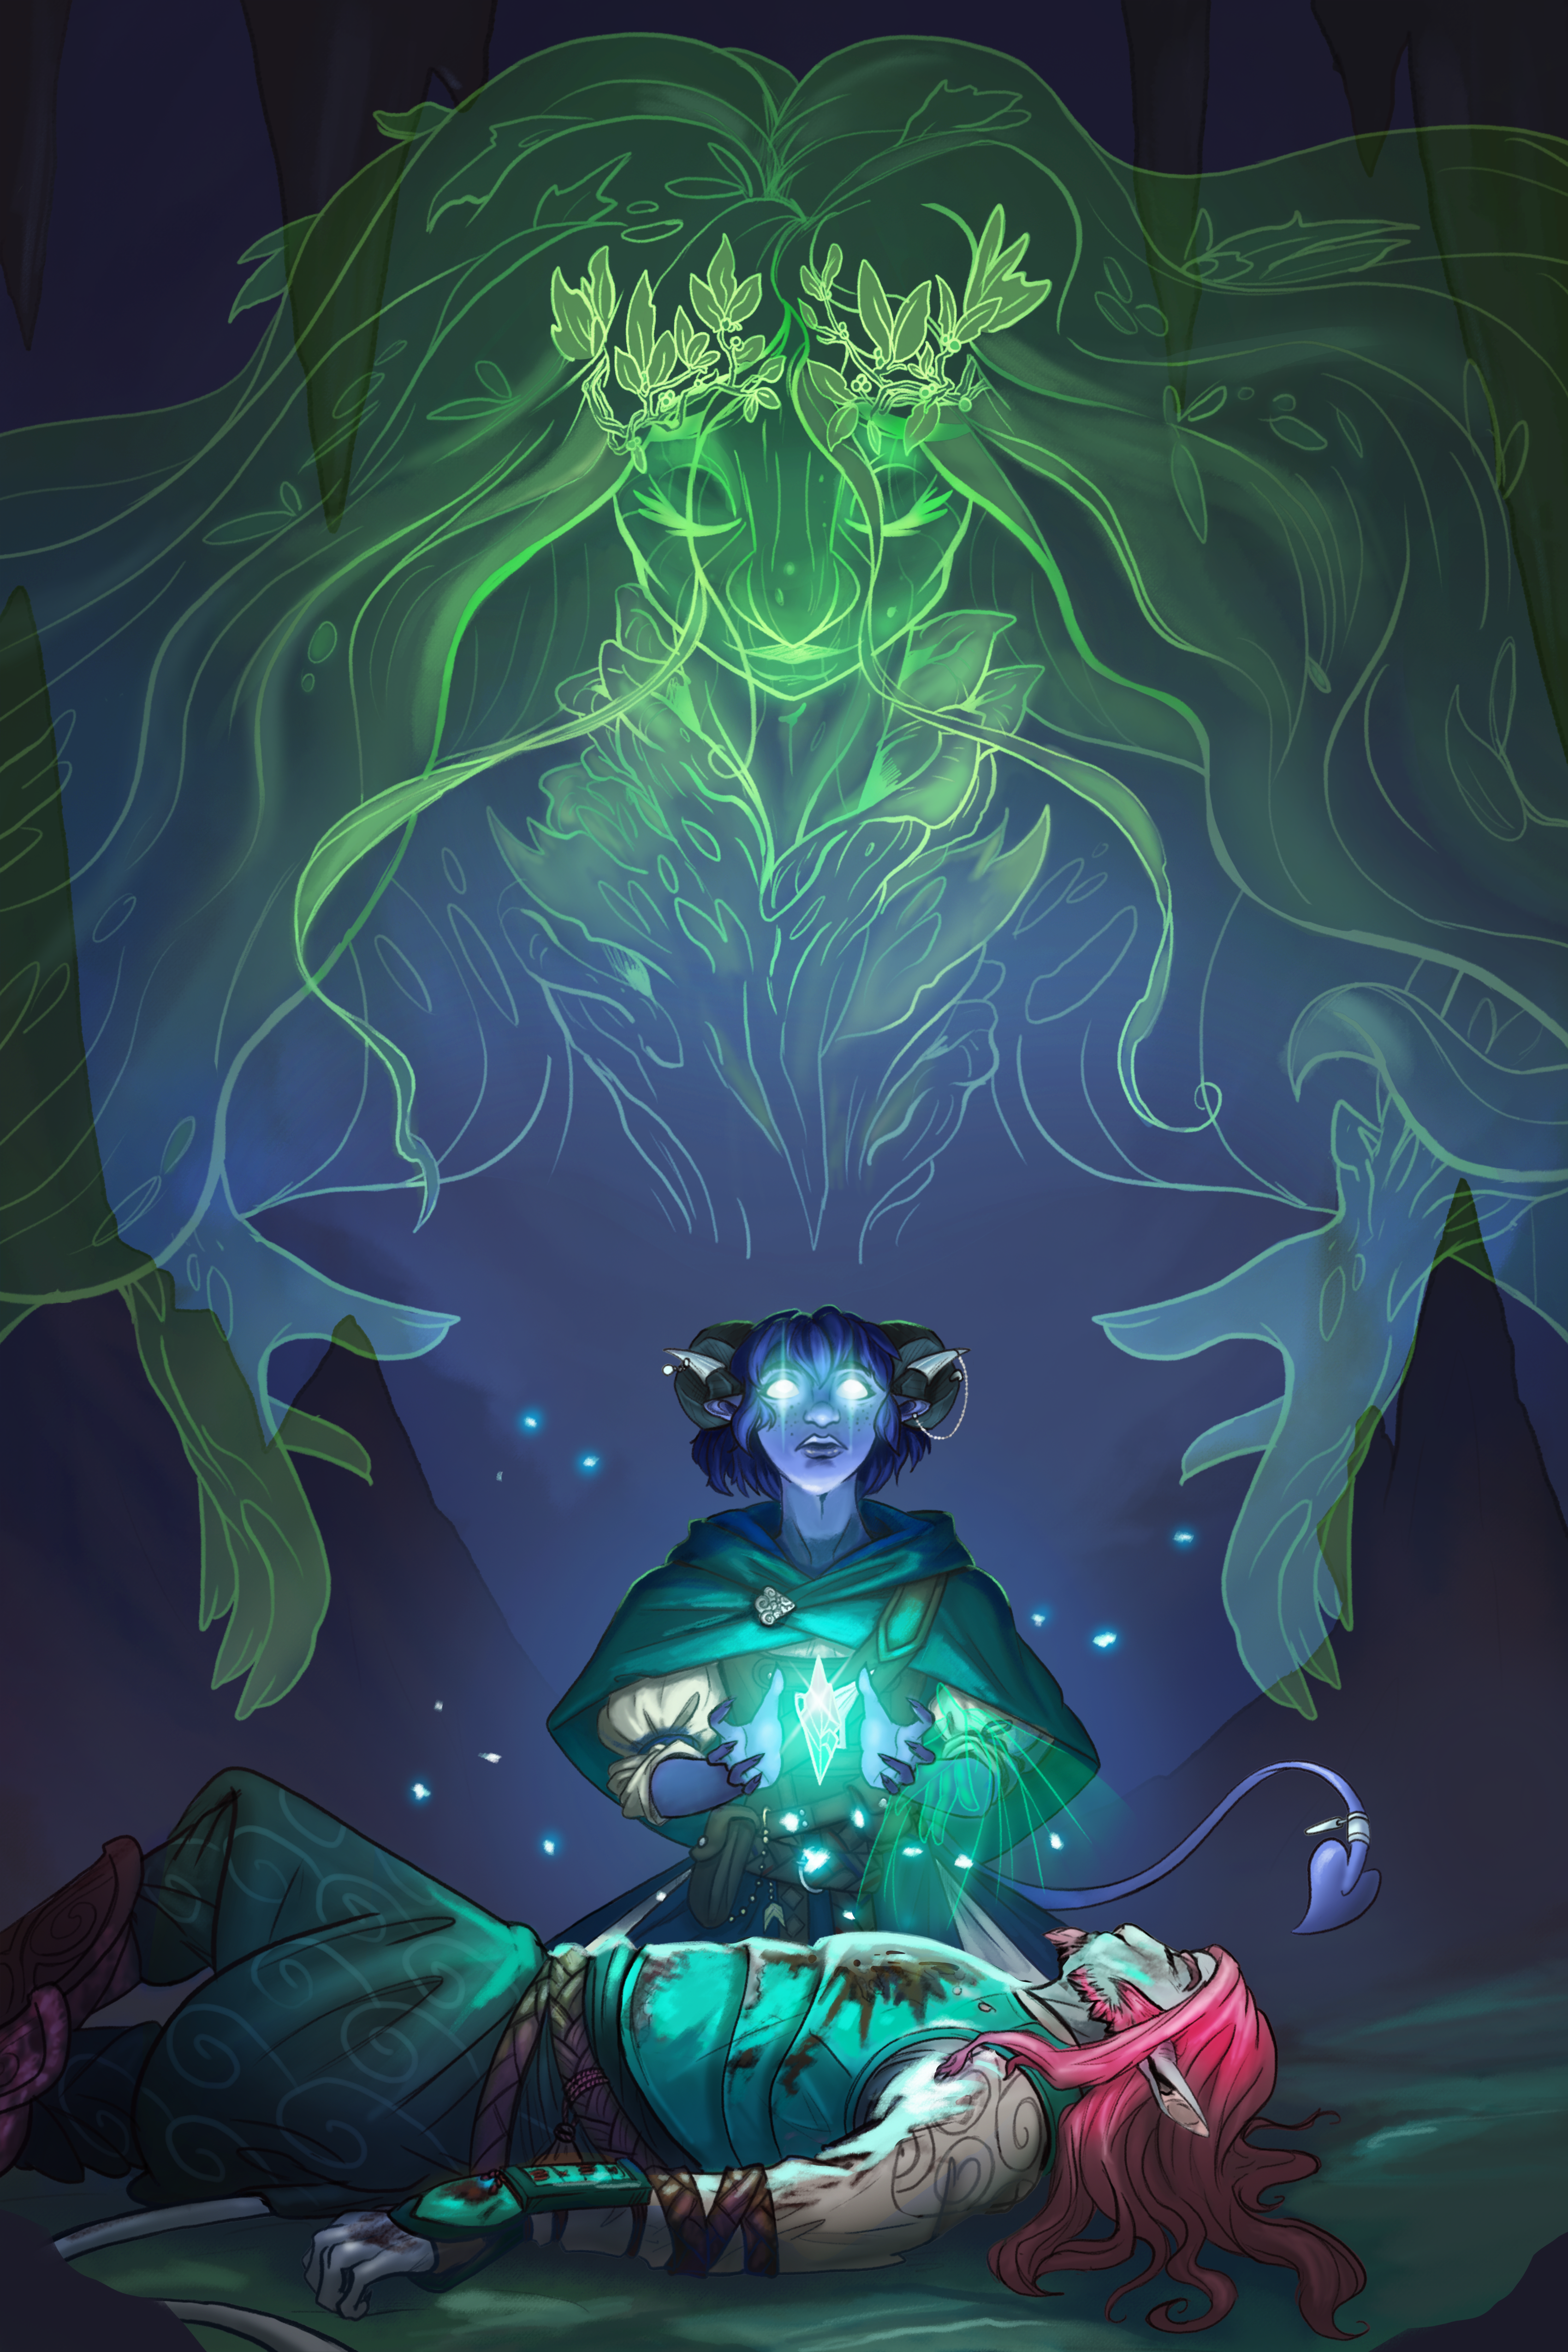 Spoilers C2e55 Artwork Done By Jacobgrimoire Criticalrole Critical Role Characters Critical Role Critical Role Fan Art Tag @criticalrolefanart to get featured! spoilers c2e55 artwork done by jacobgrimoire criticalrole critical role characters critical role critical role fan art